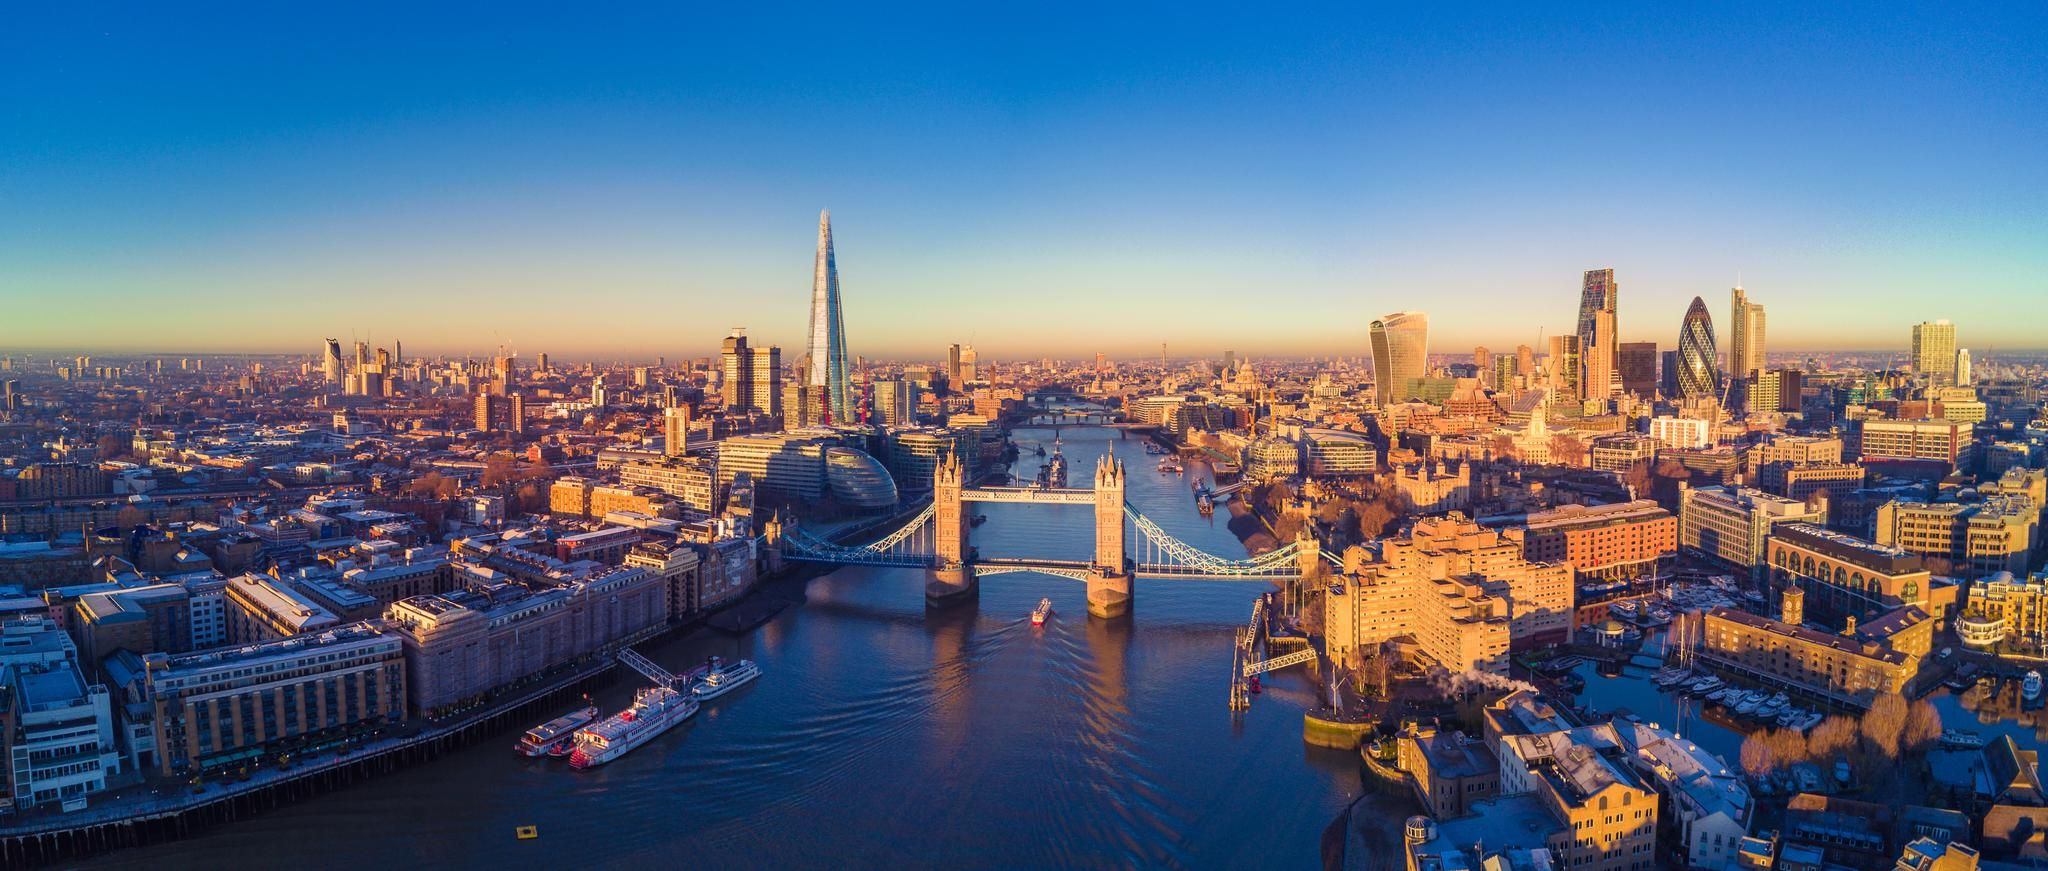 Enjoy panoramic views of London